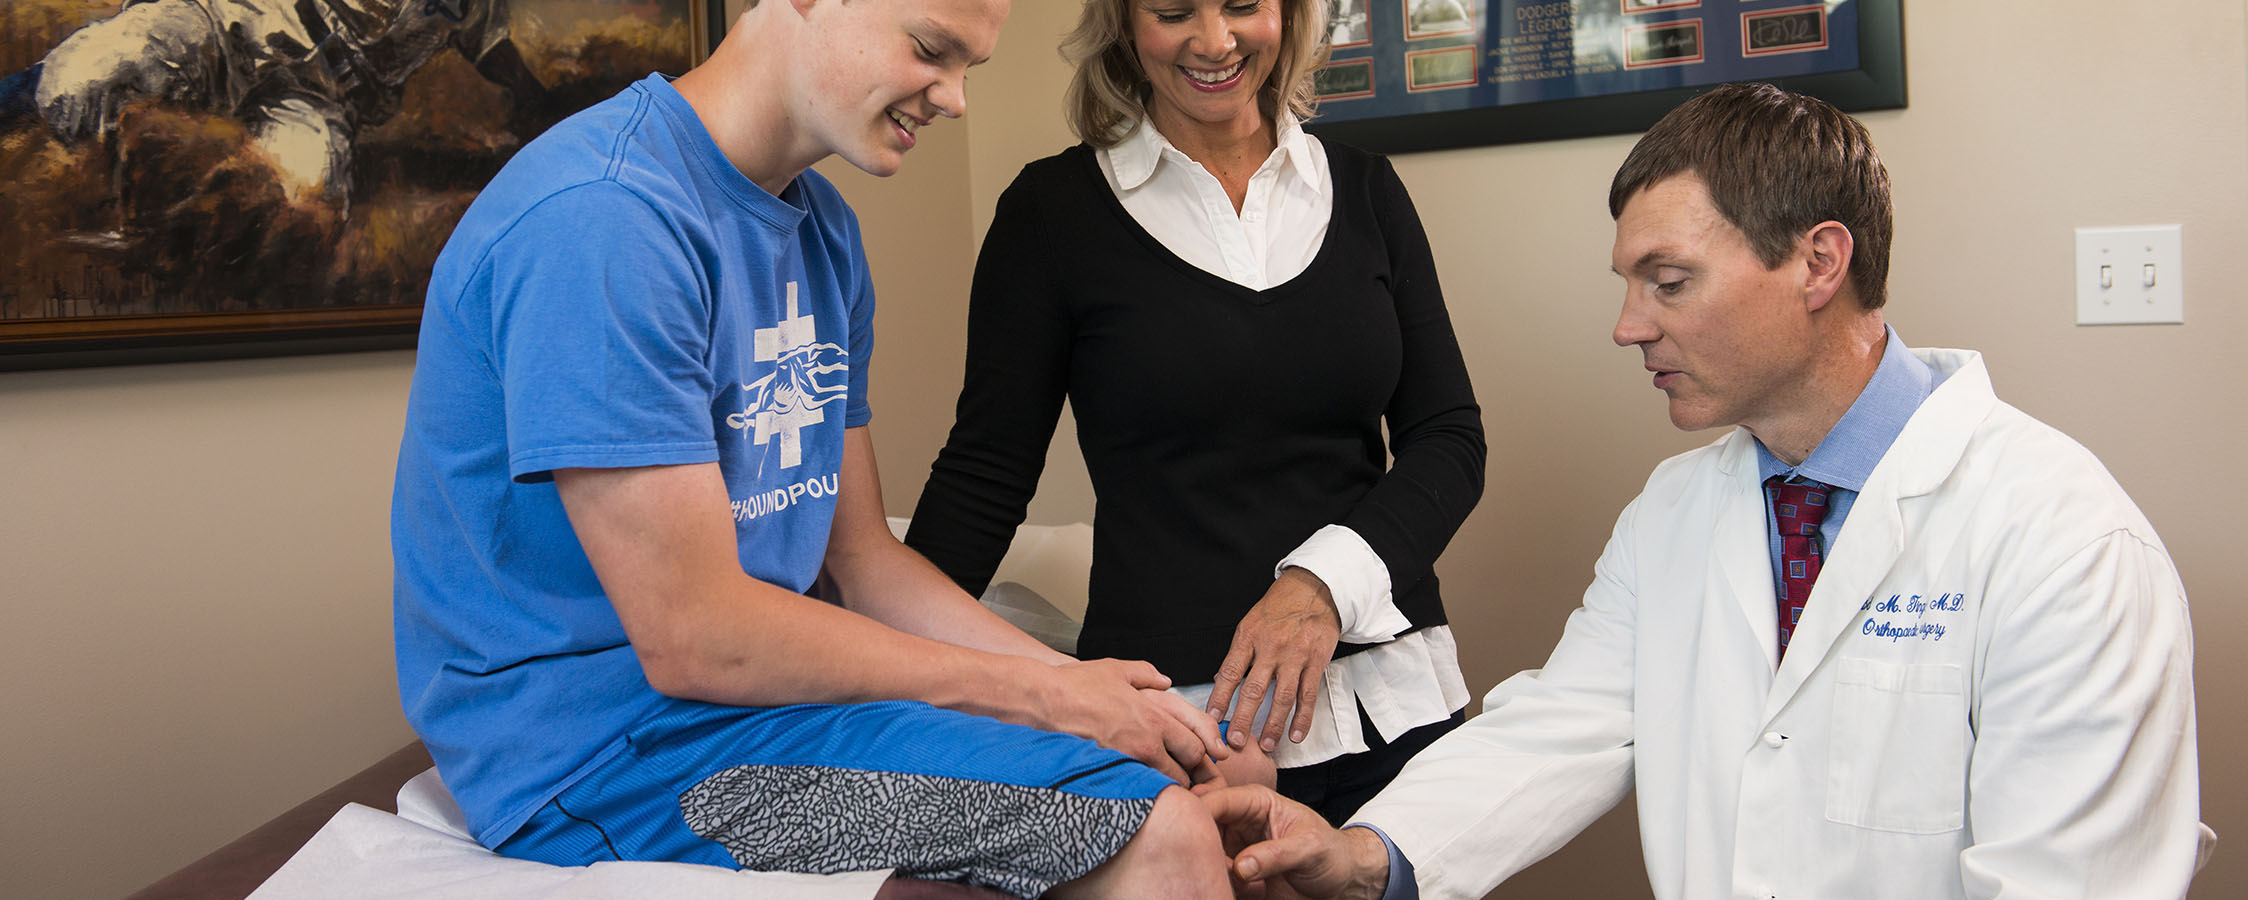 doctor-tingstad-orthopedic-surgeon-helping-young-athlete